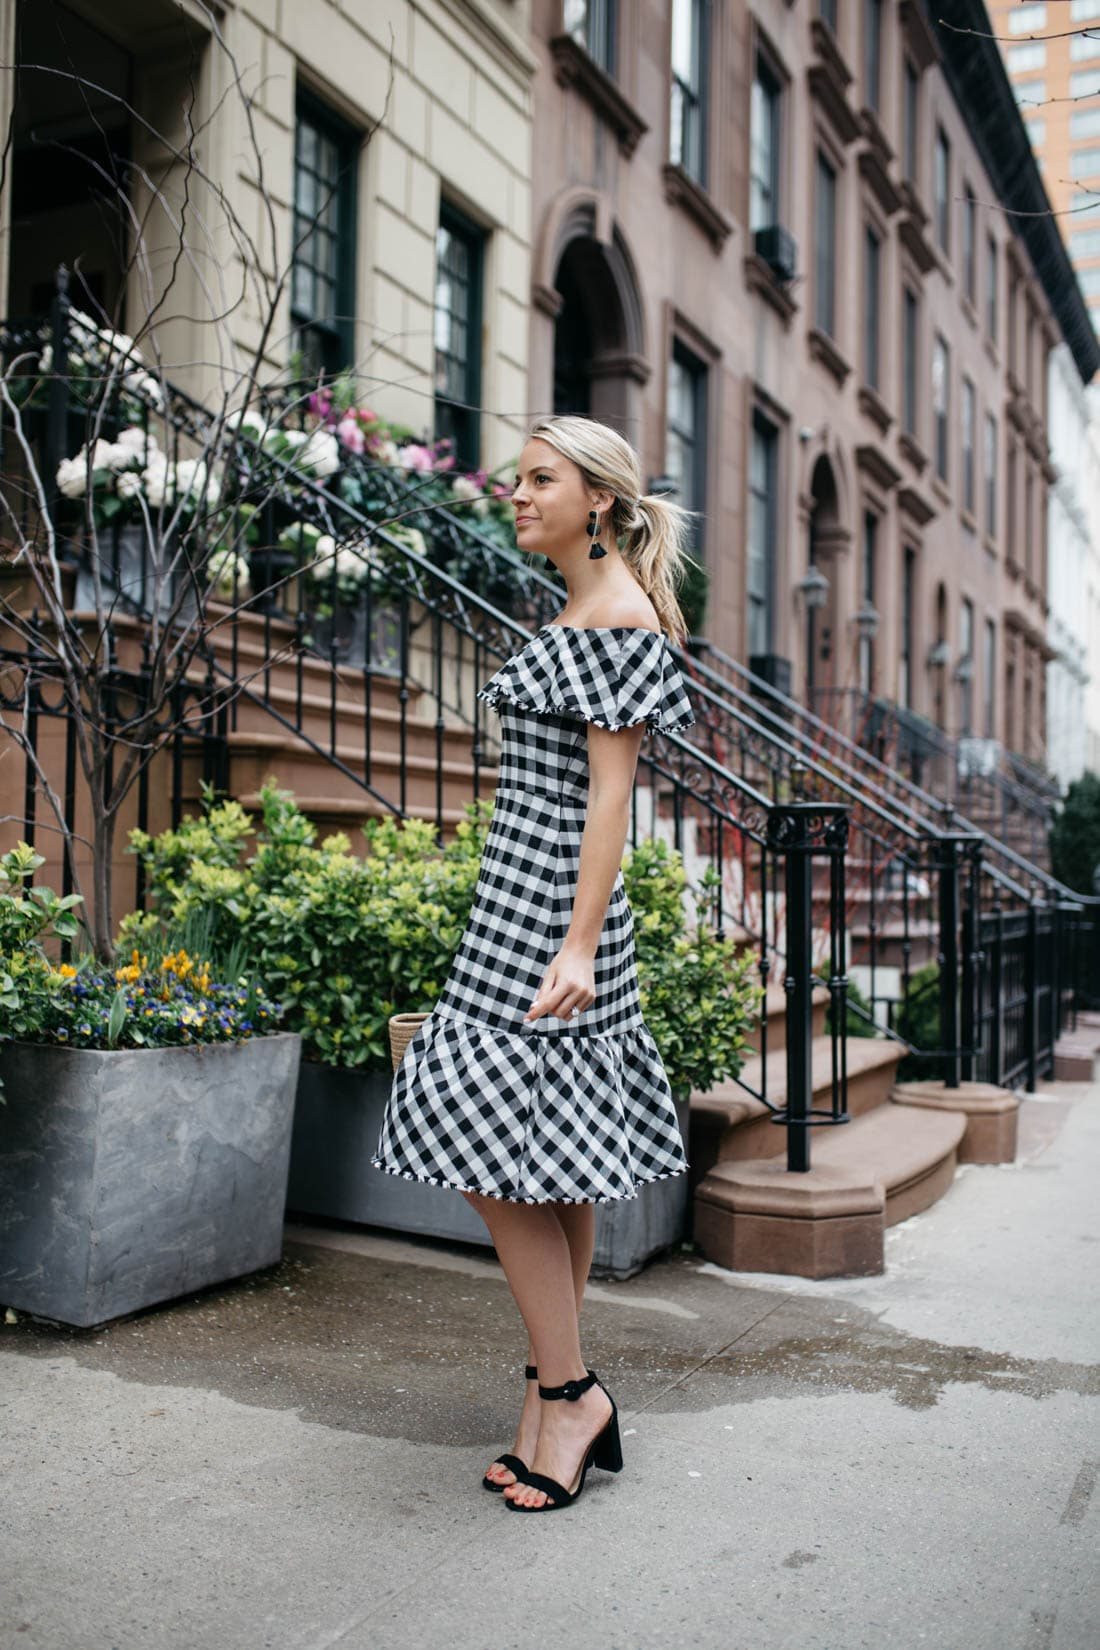 f8f43b8040390 Styled Snapshots · Ann Taylor · Baublebar Earrings · Gingham Fashion ·  Gingham Dress · Gingham Off The Shoulder ...